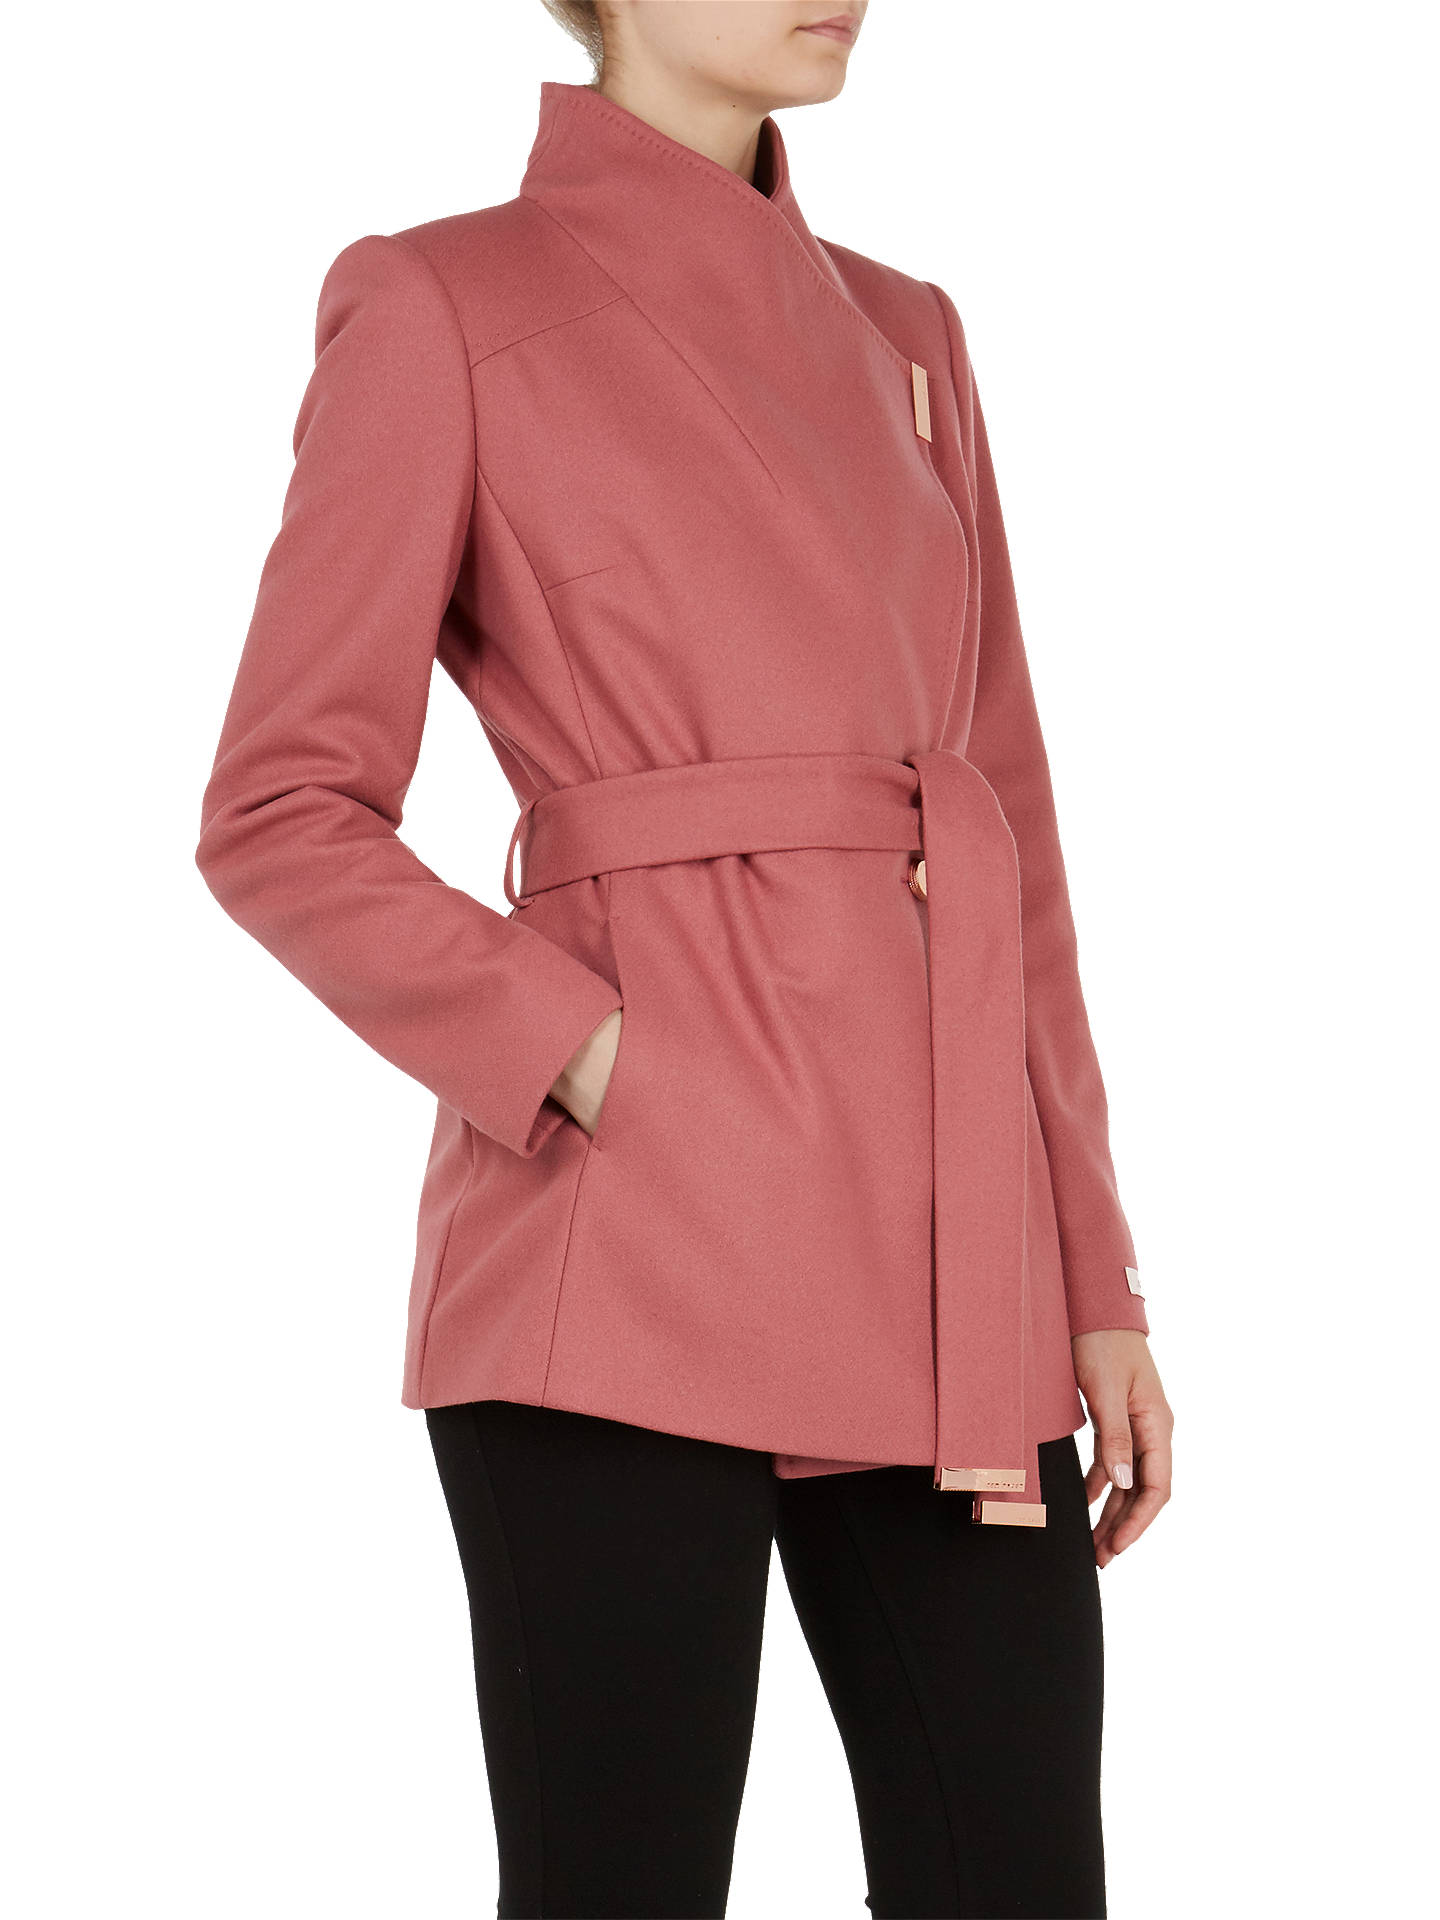 cda4f7d0ce250 Buy Ted Baker Rytaa Wool Blend Wrap Coat, Orange Coral, XXS Online at  johnlewis ...